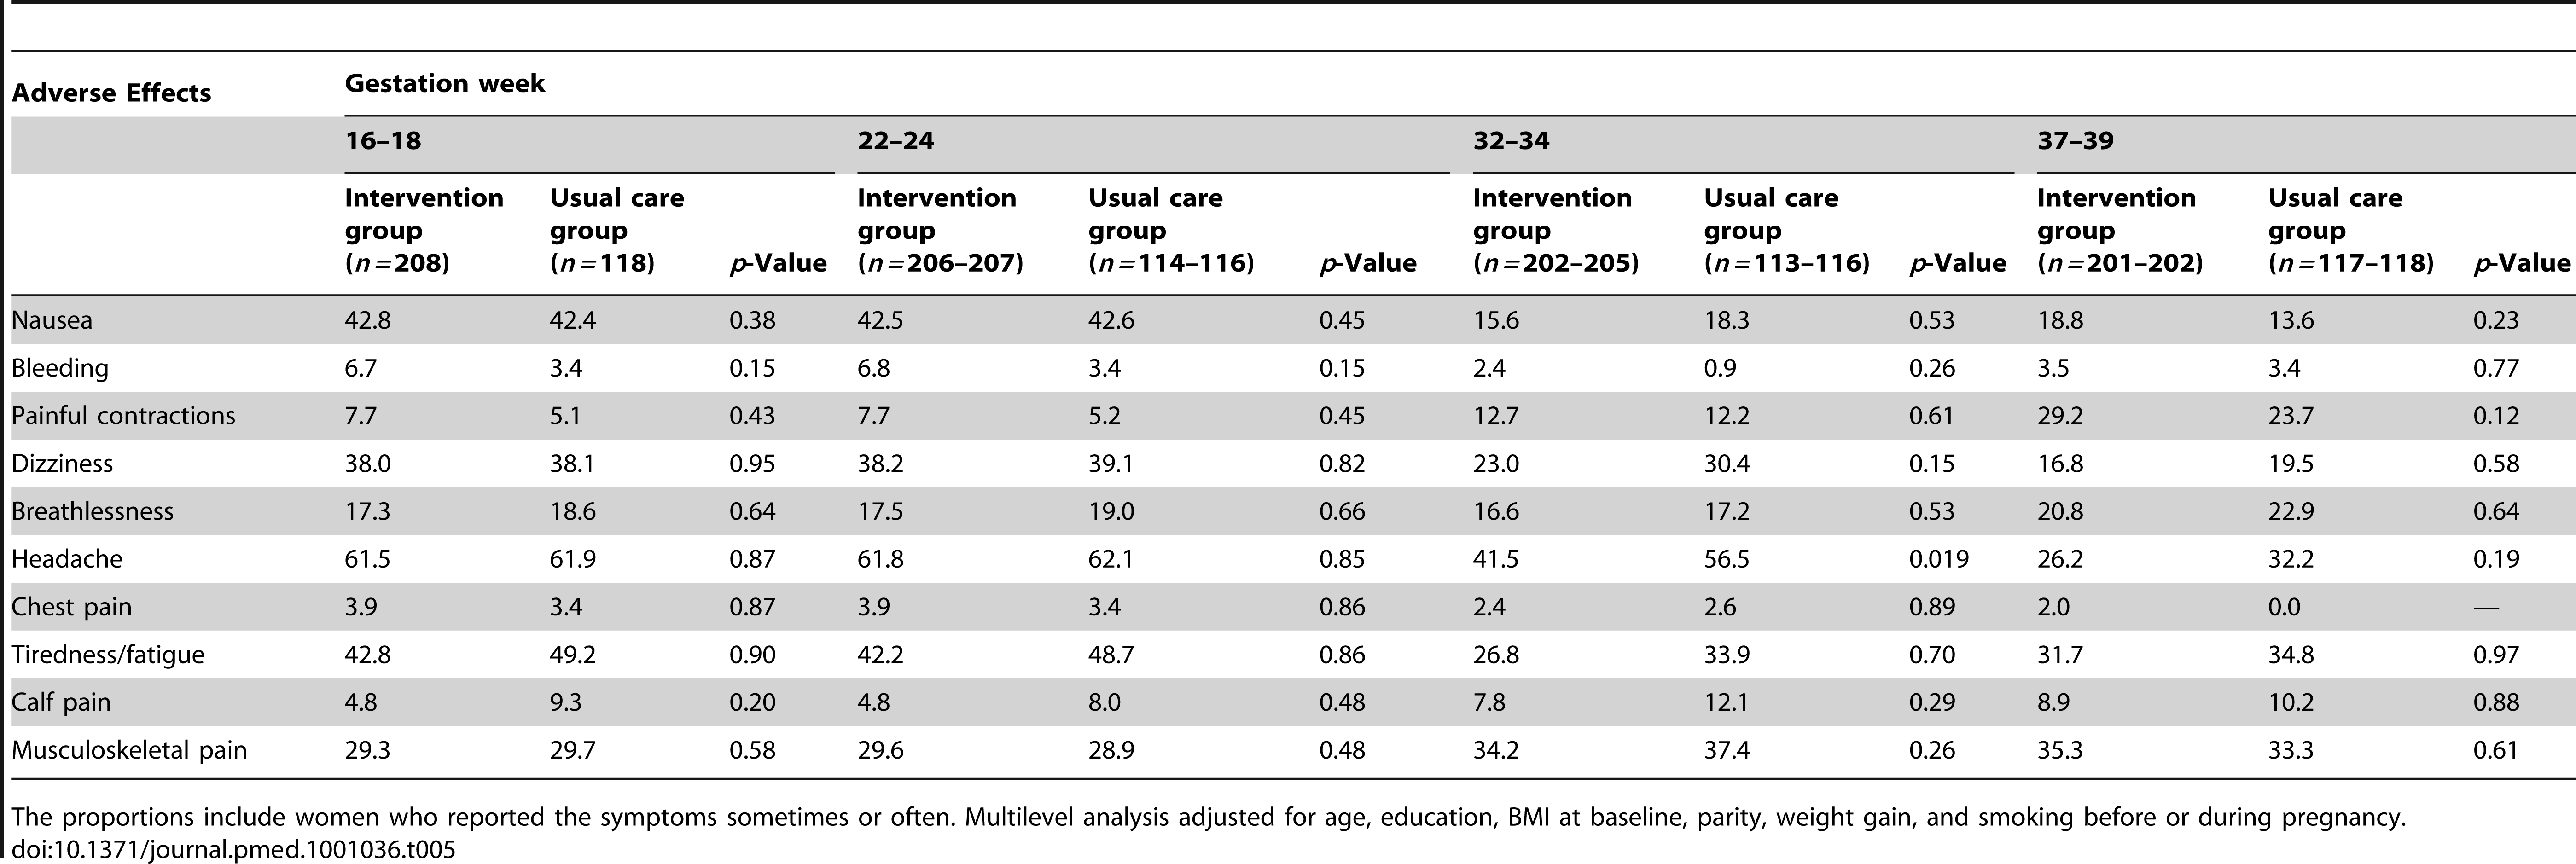 Incidence of selected adverse effects (%) among intervention and usual care groups by gestation week.